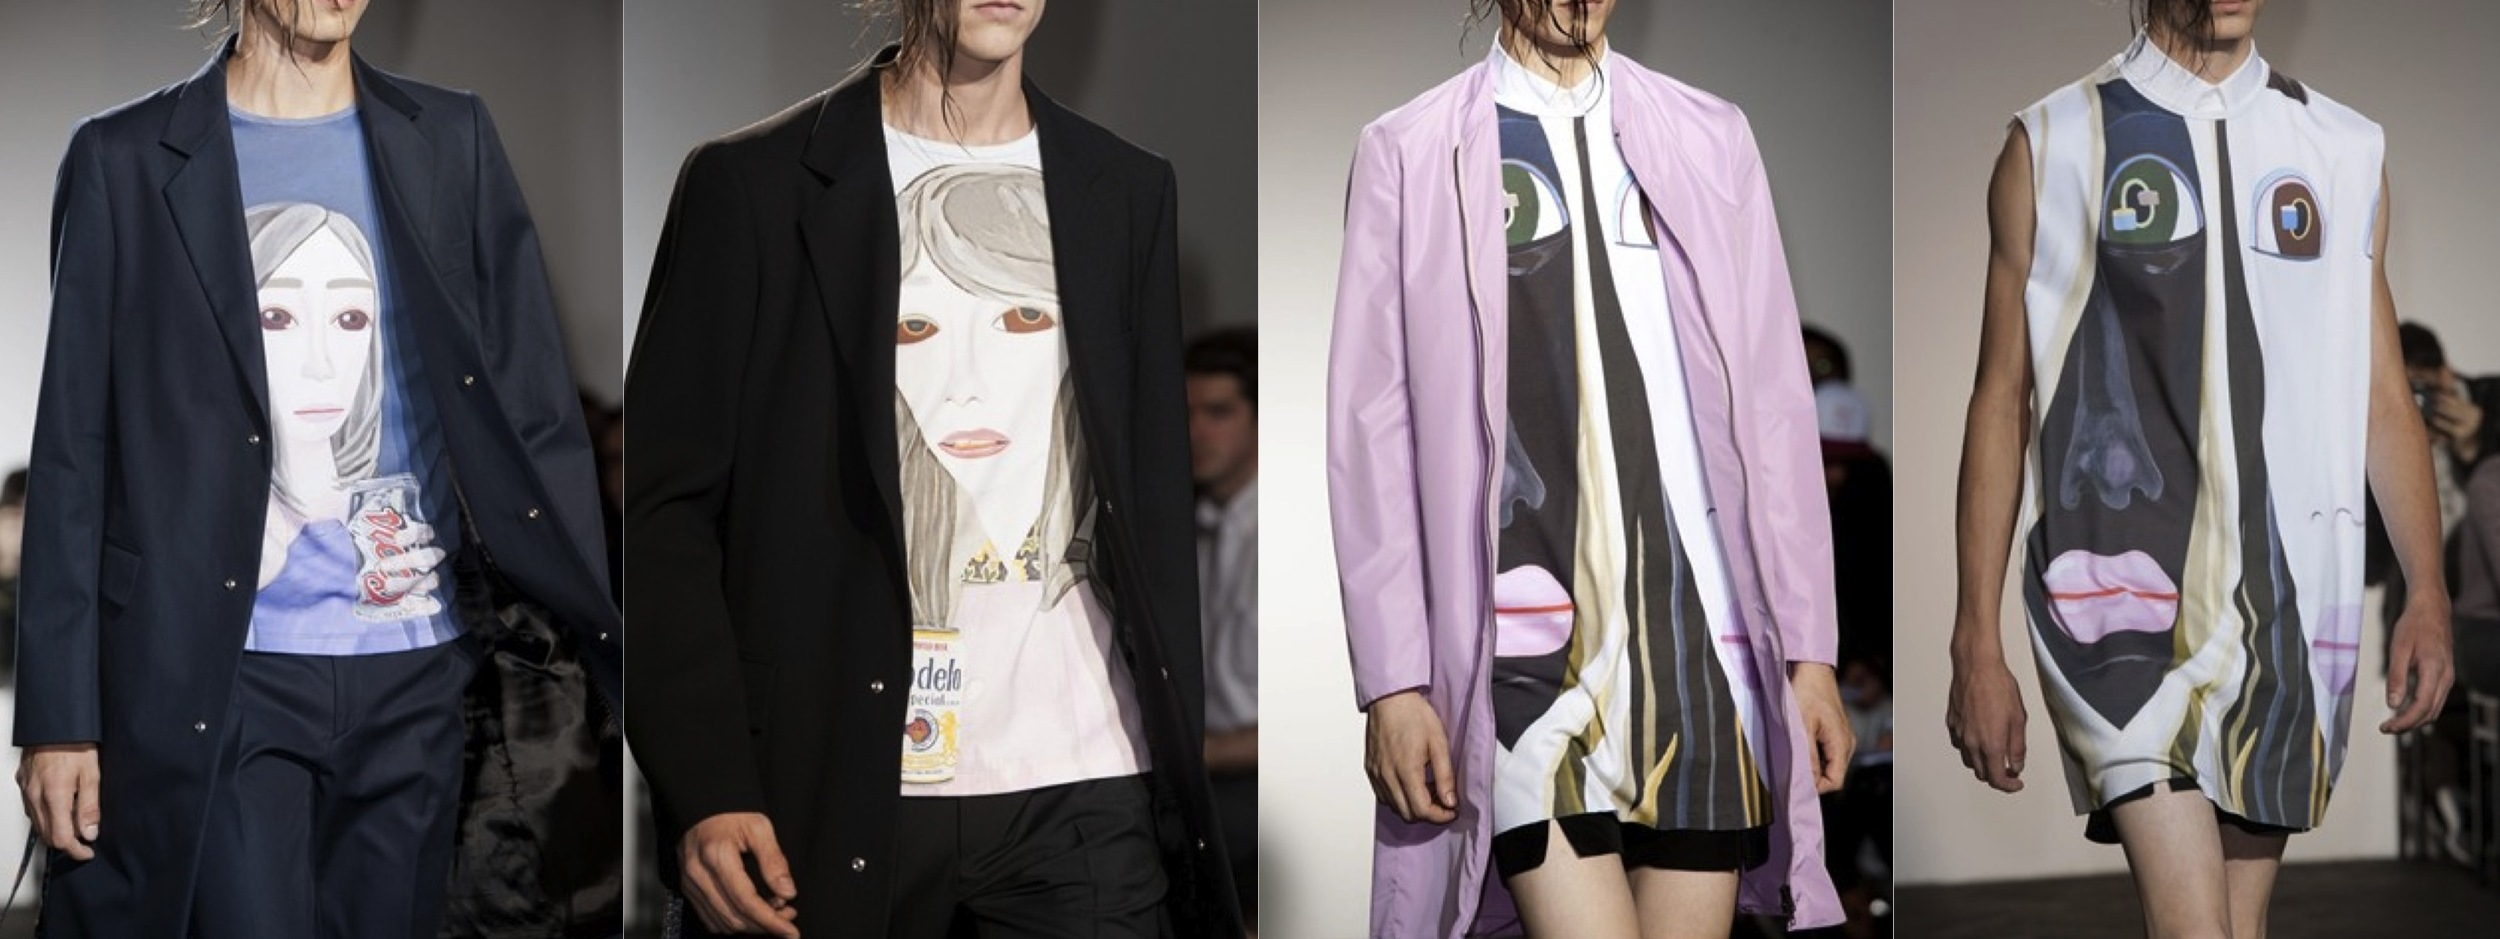 Raf Simons Spring Summer 2013 Menswear Highlights